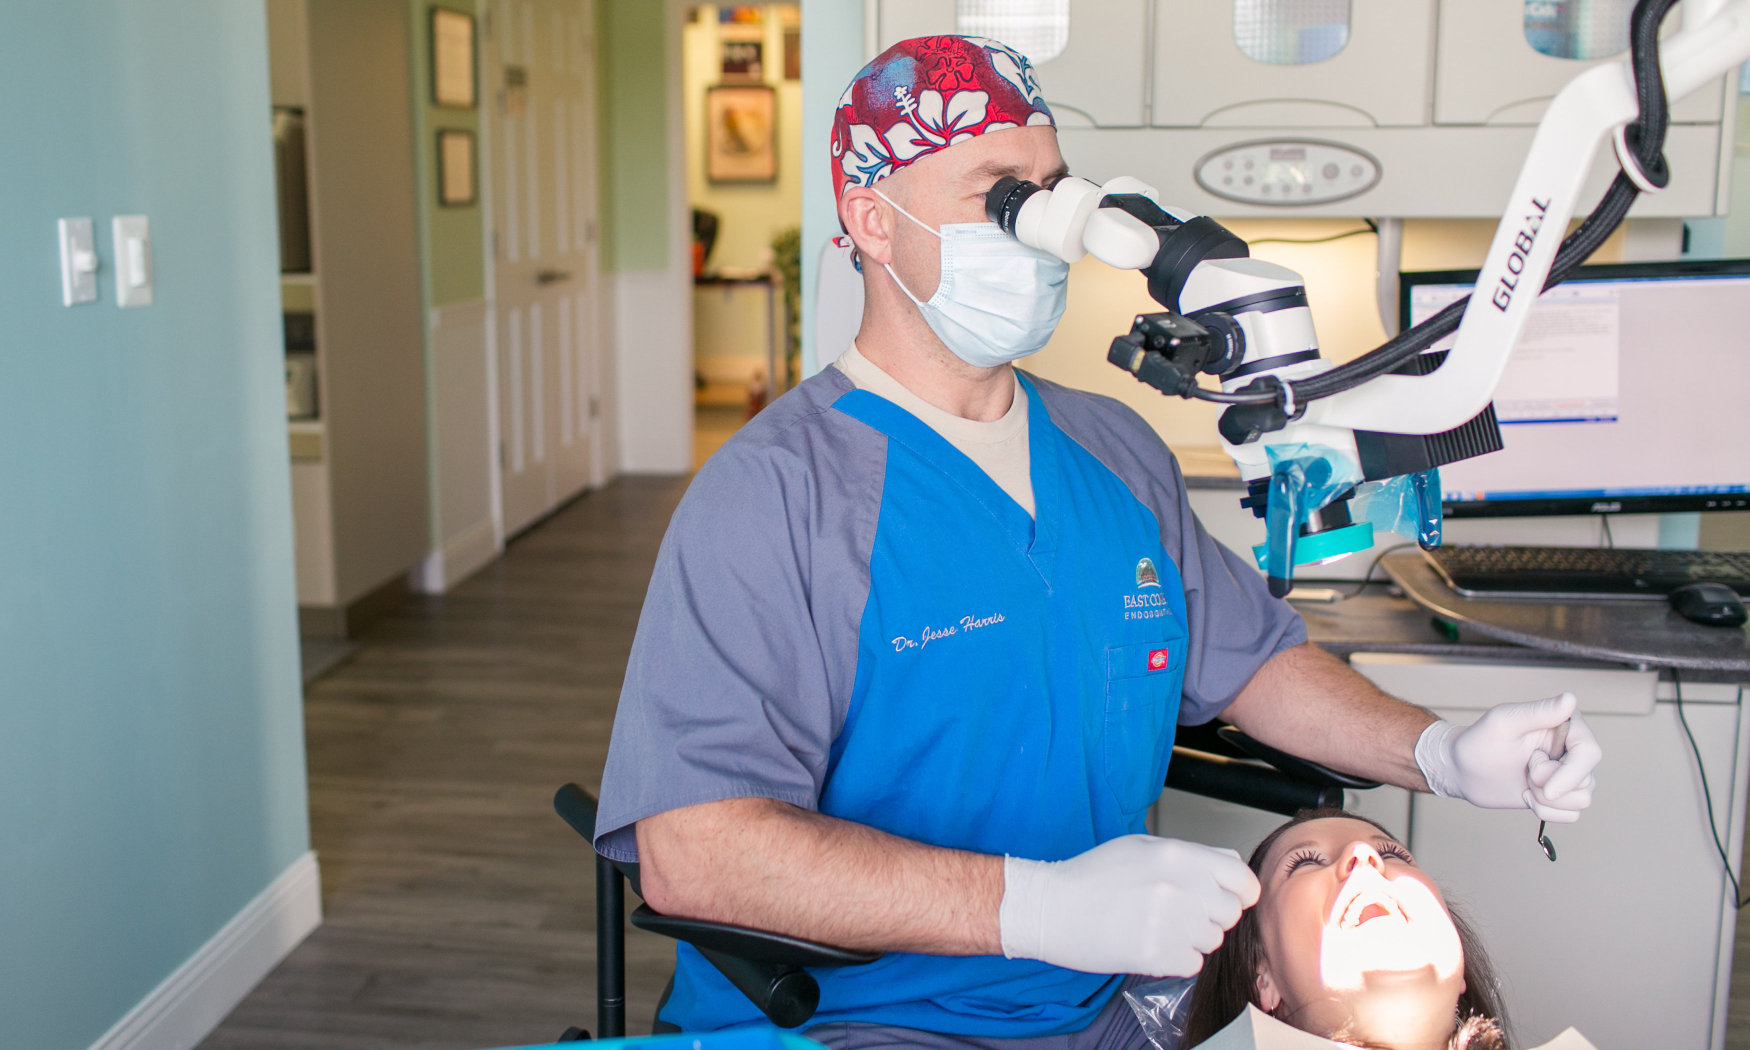 Dr. Harris performs a root canal in his office.